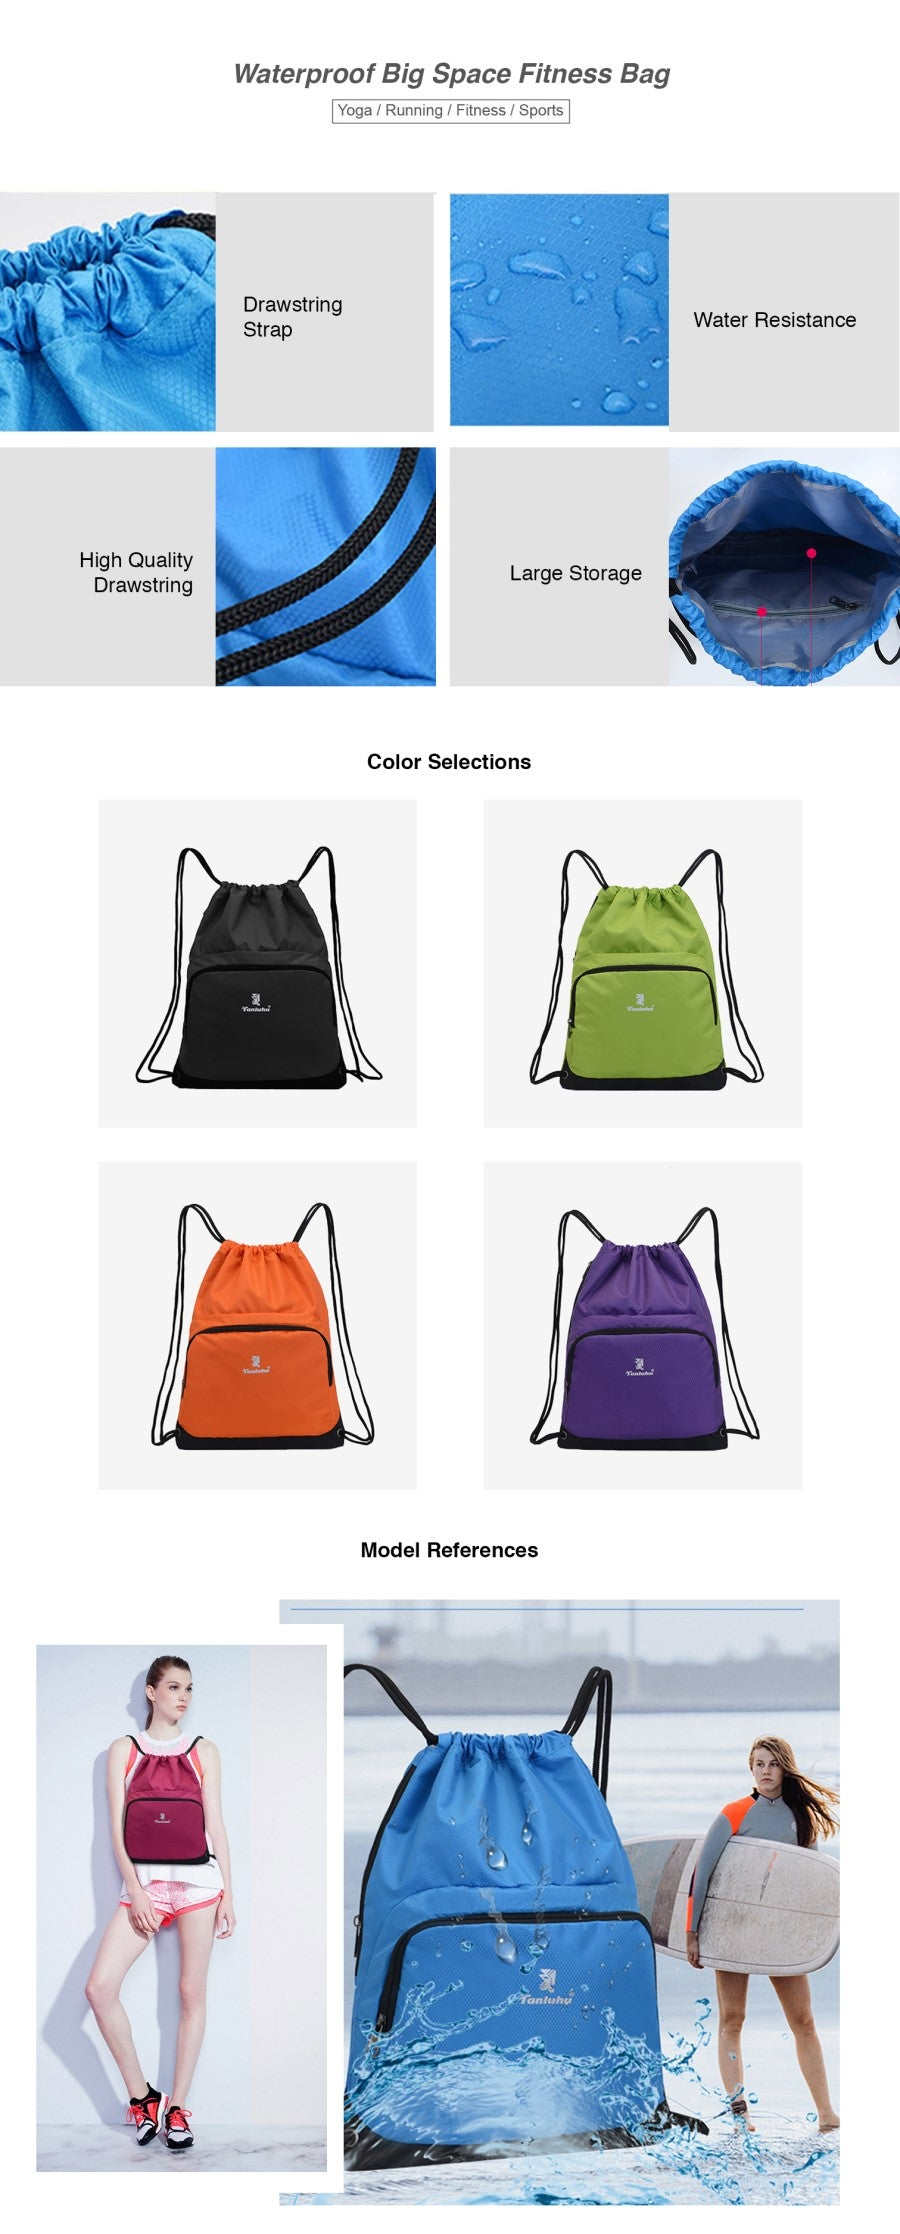 Waterproof Big Space Fitness Bag